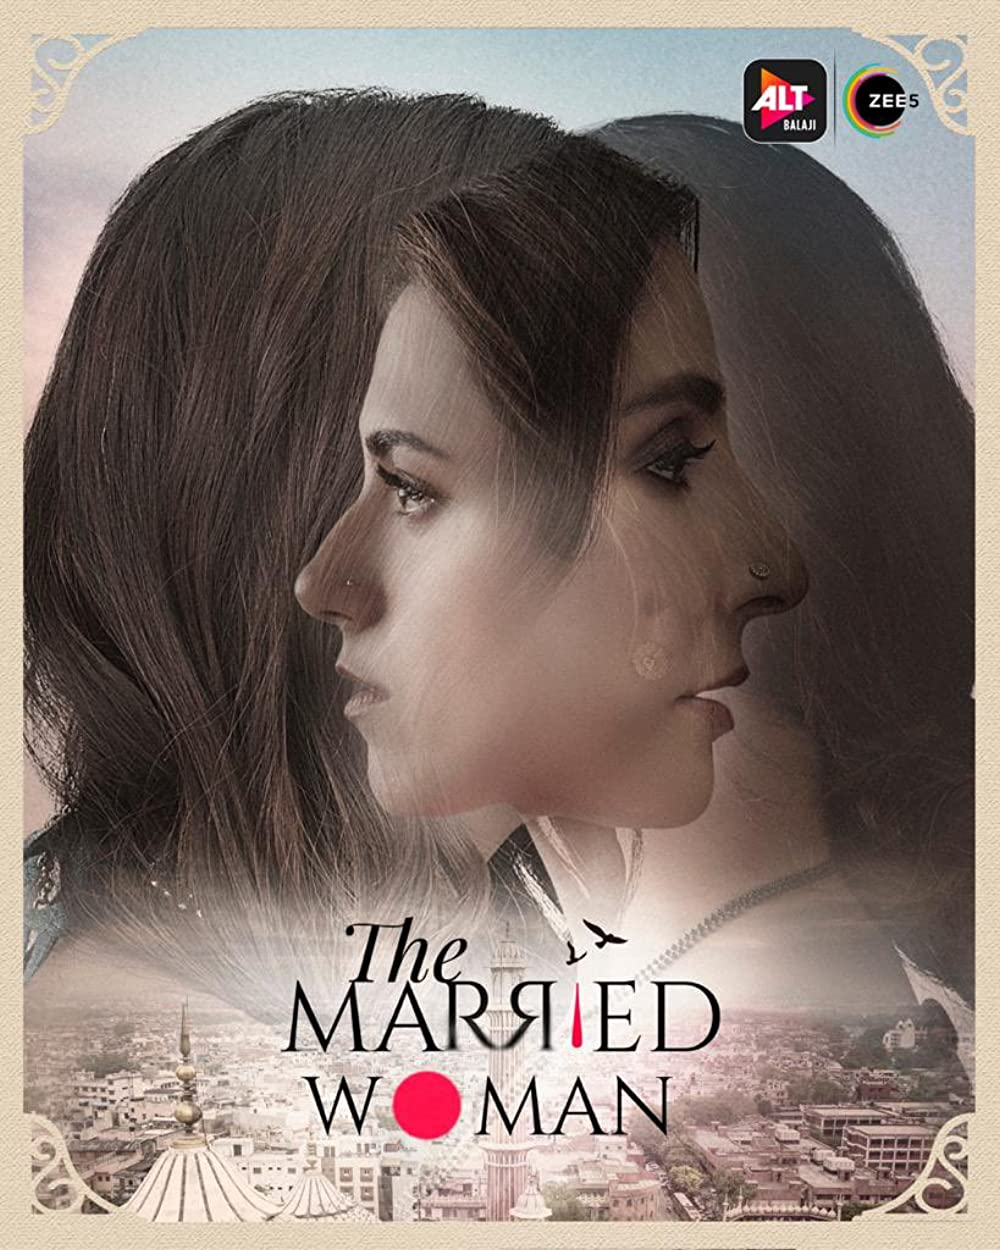 The Married Woman 2021 S01 Hindi Complete ALTBalaji Web Series 972MB HDRip Download